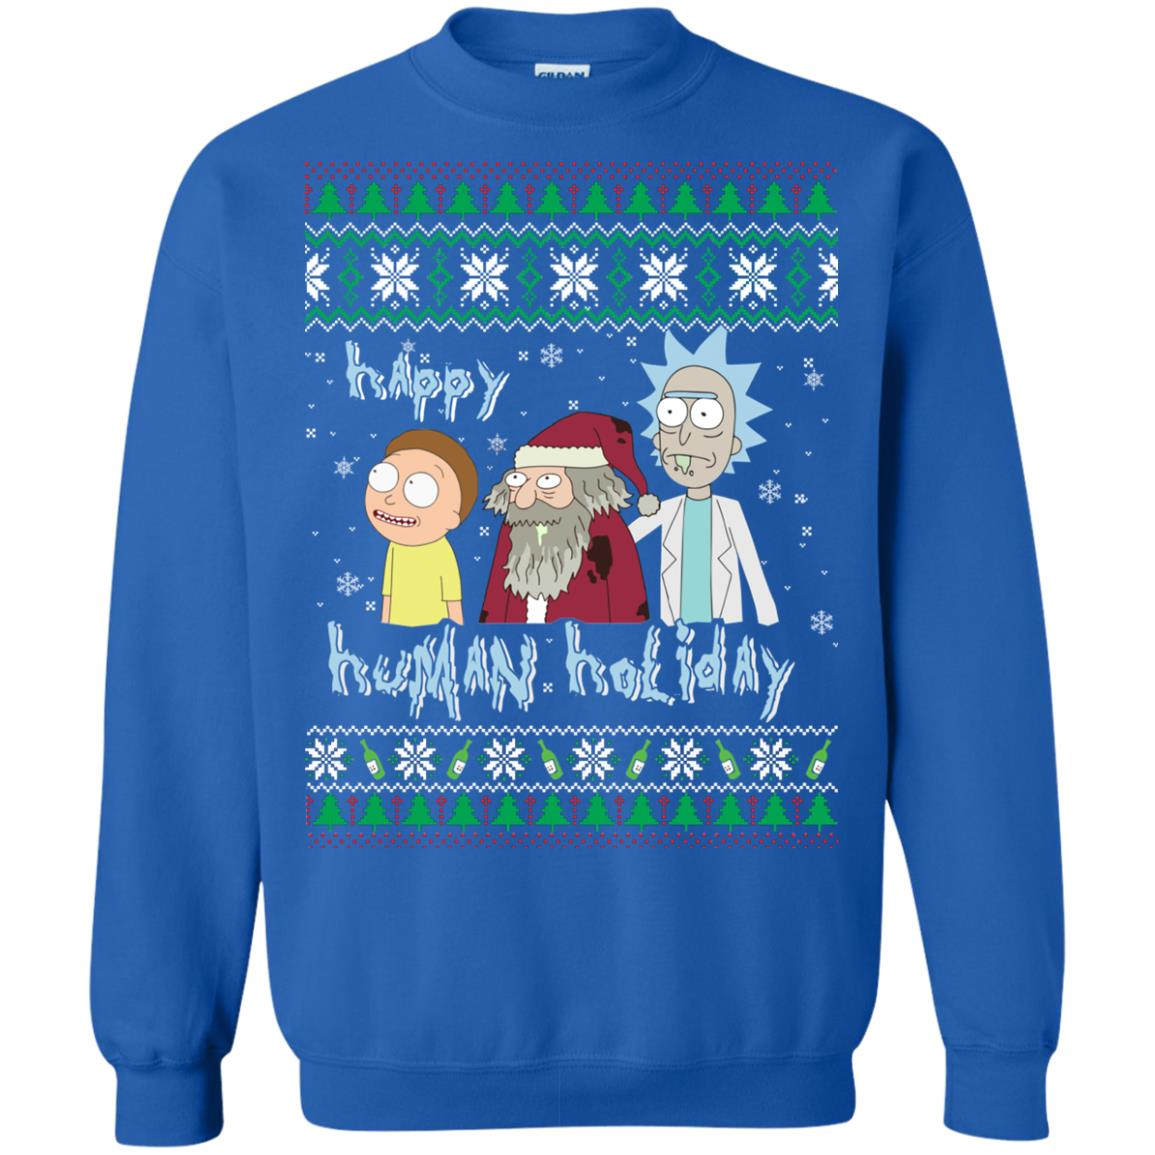 image 455px Rick and Morty: Happy Human Holiday Christmas Sweater